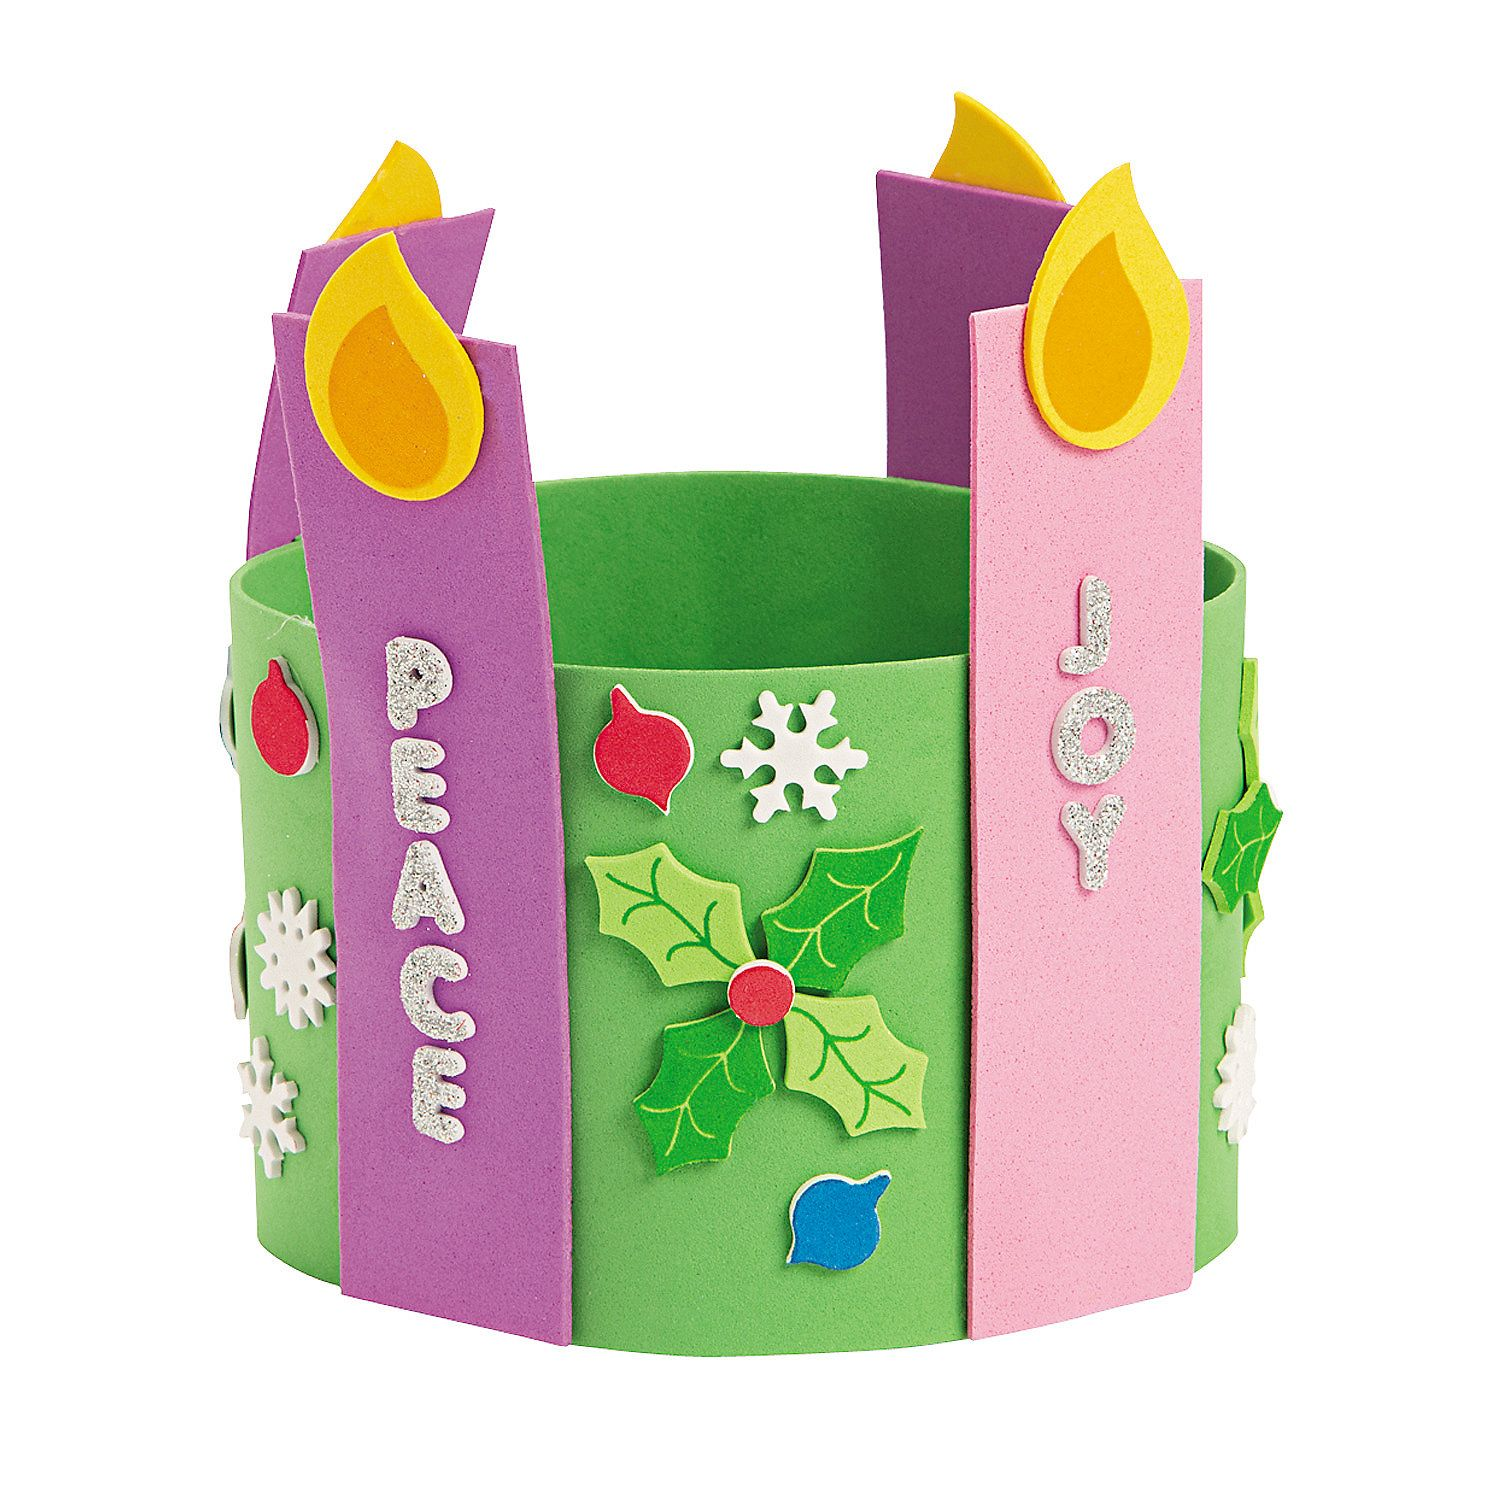 Think I Could Make Something Similar Out Of Construction Paper Advent Candle Stand Up Wreath